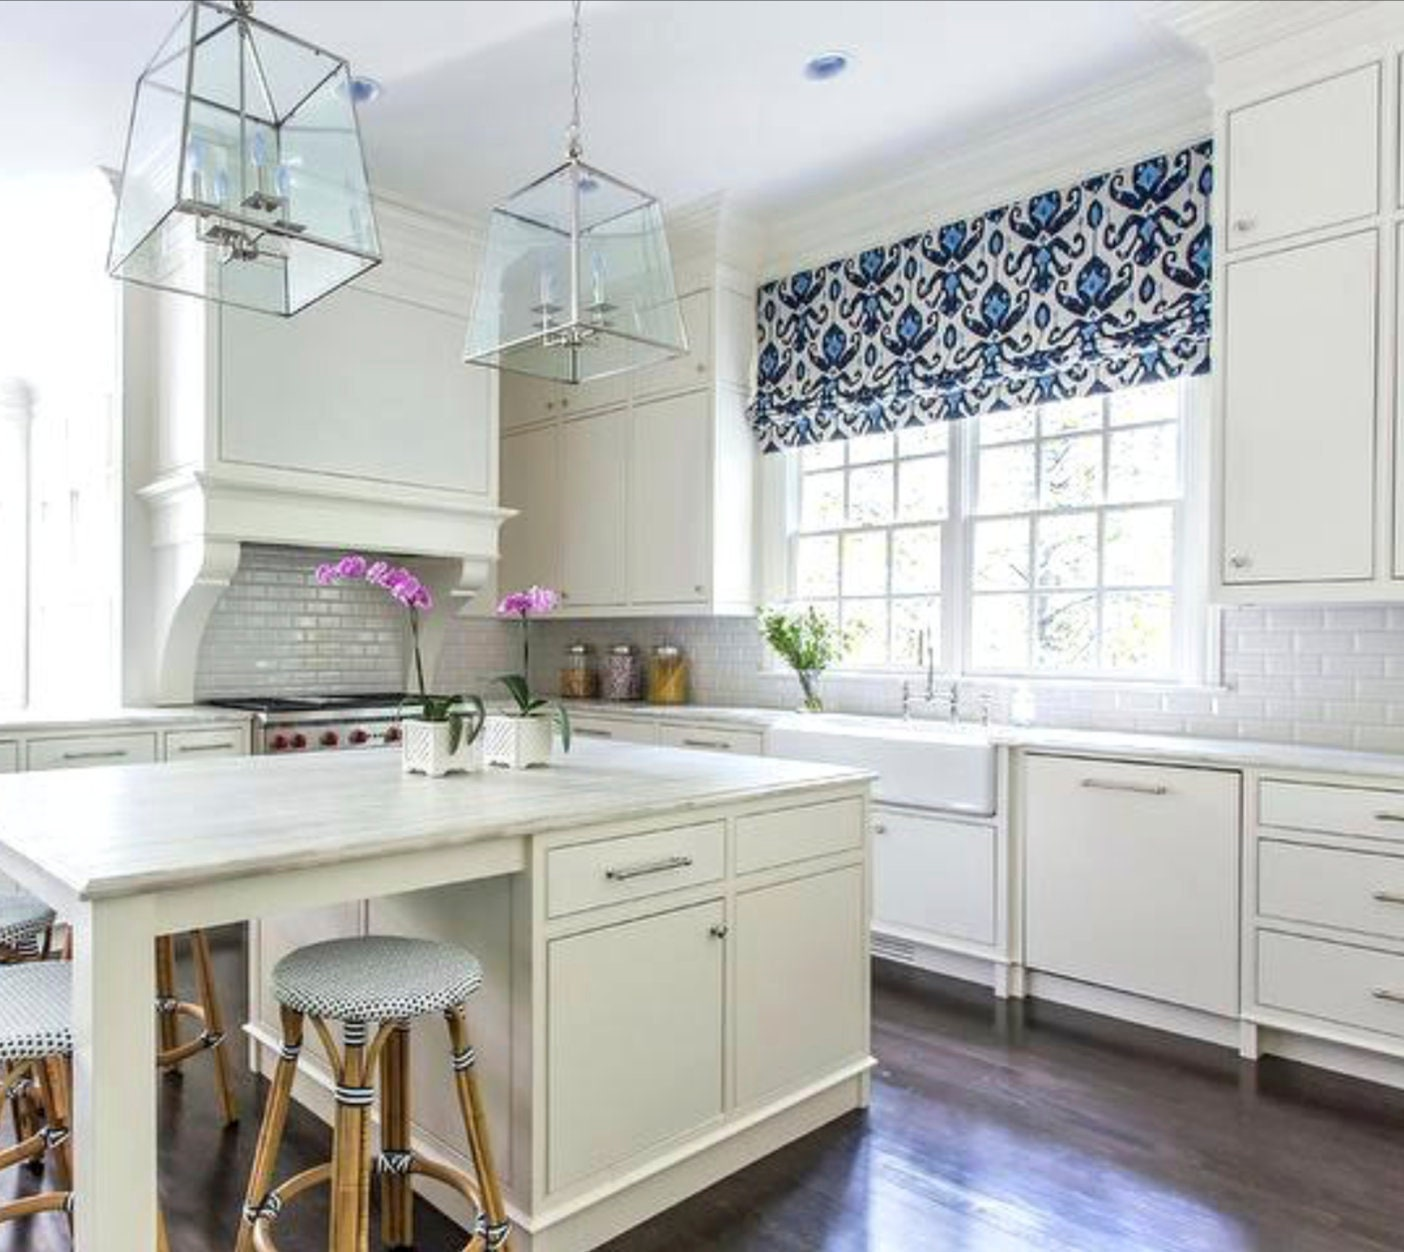 White Kitchen Blinds: Blue Ikat Faux Roman Shades Or Functioning Roman Shades